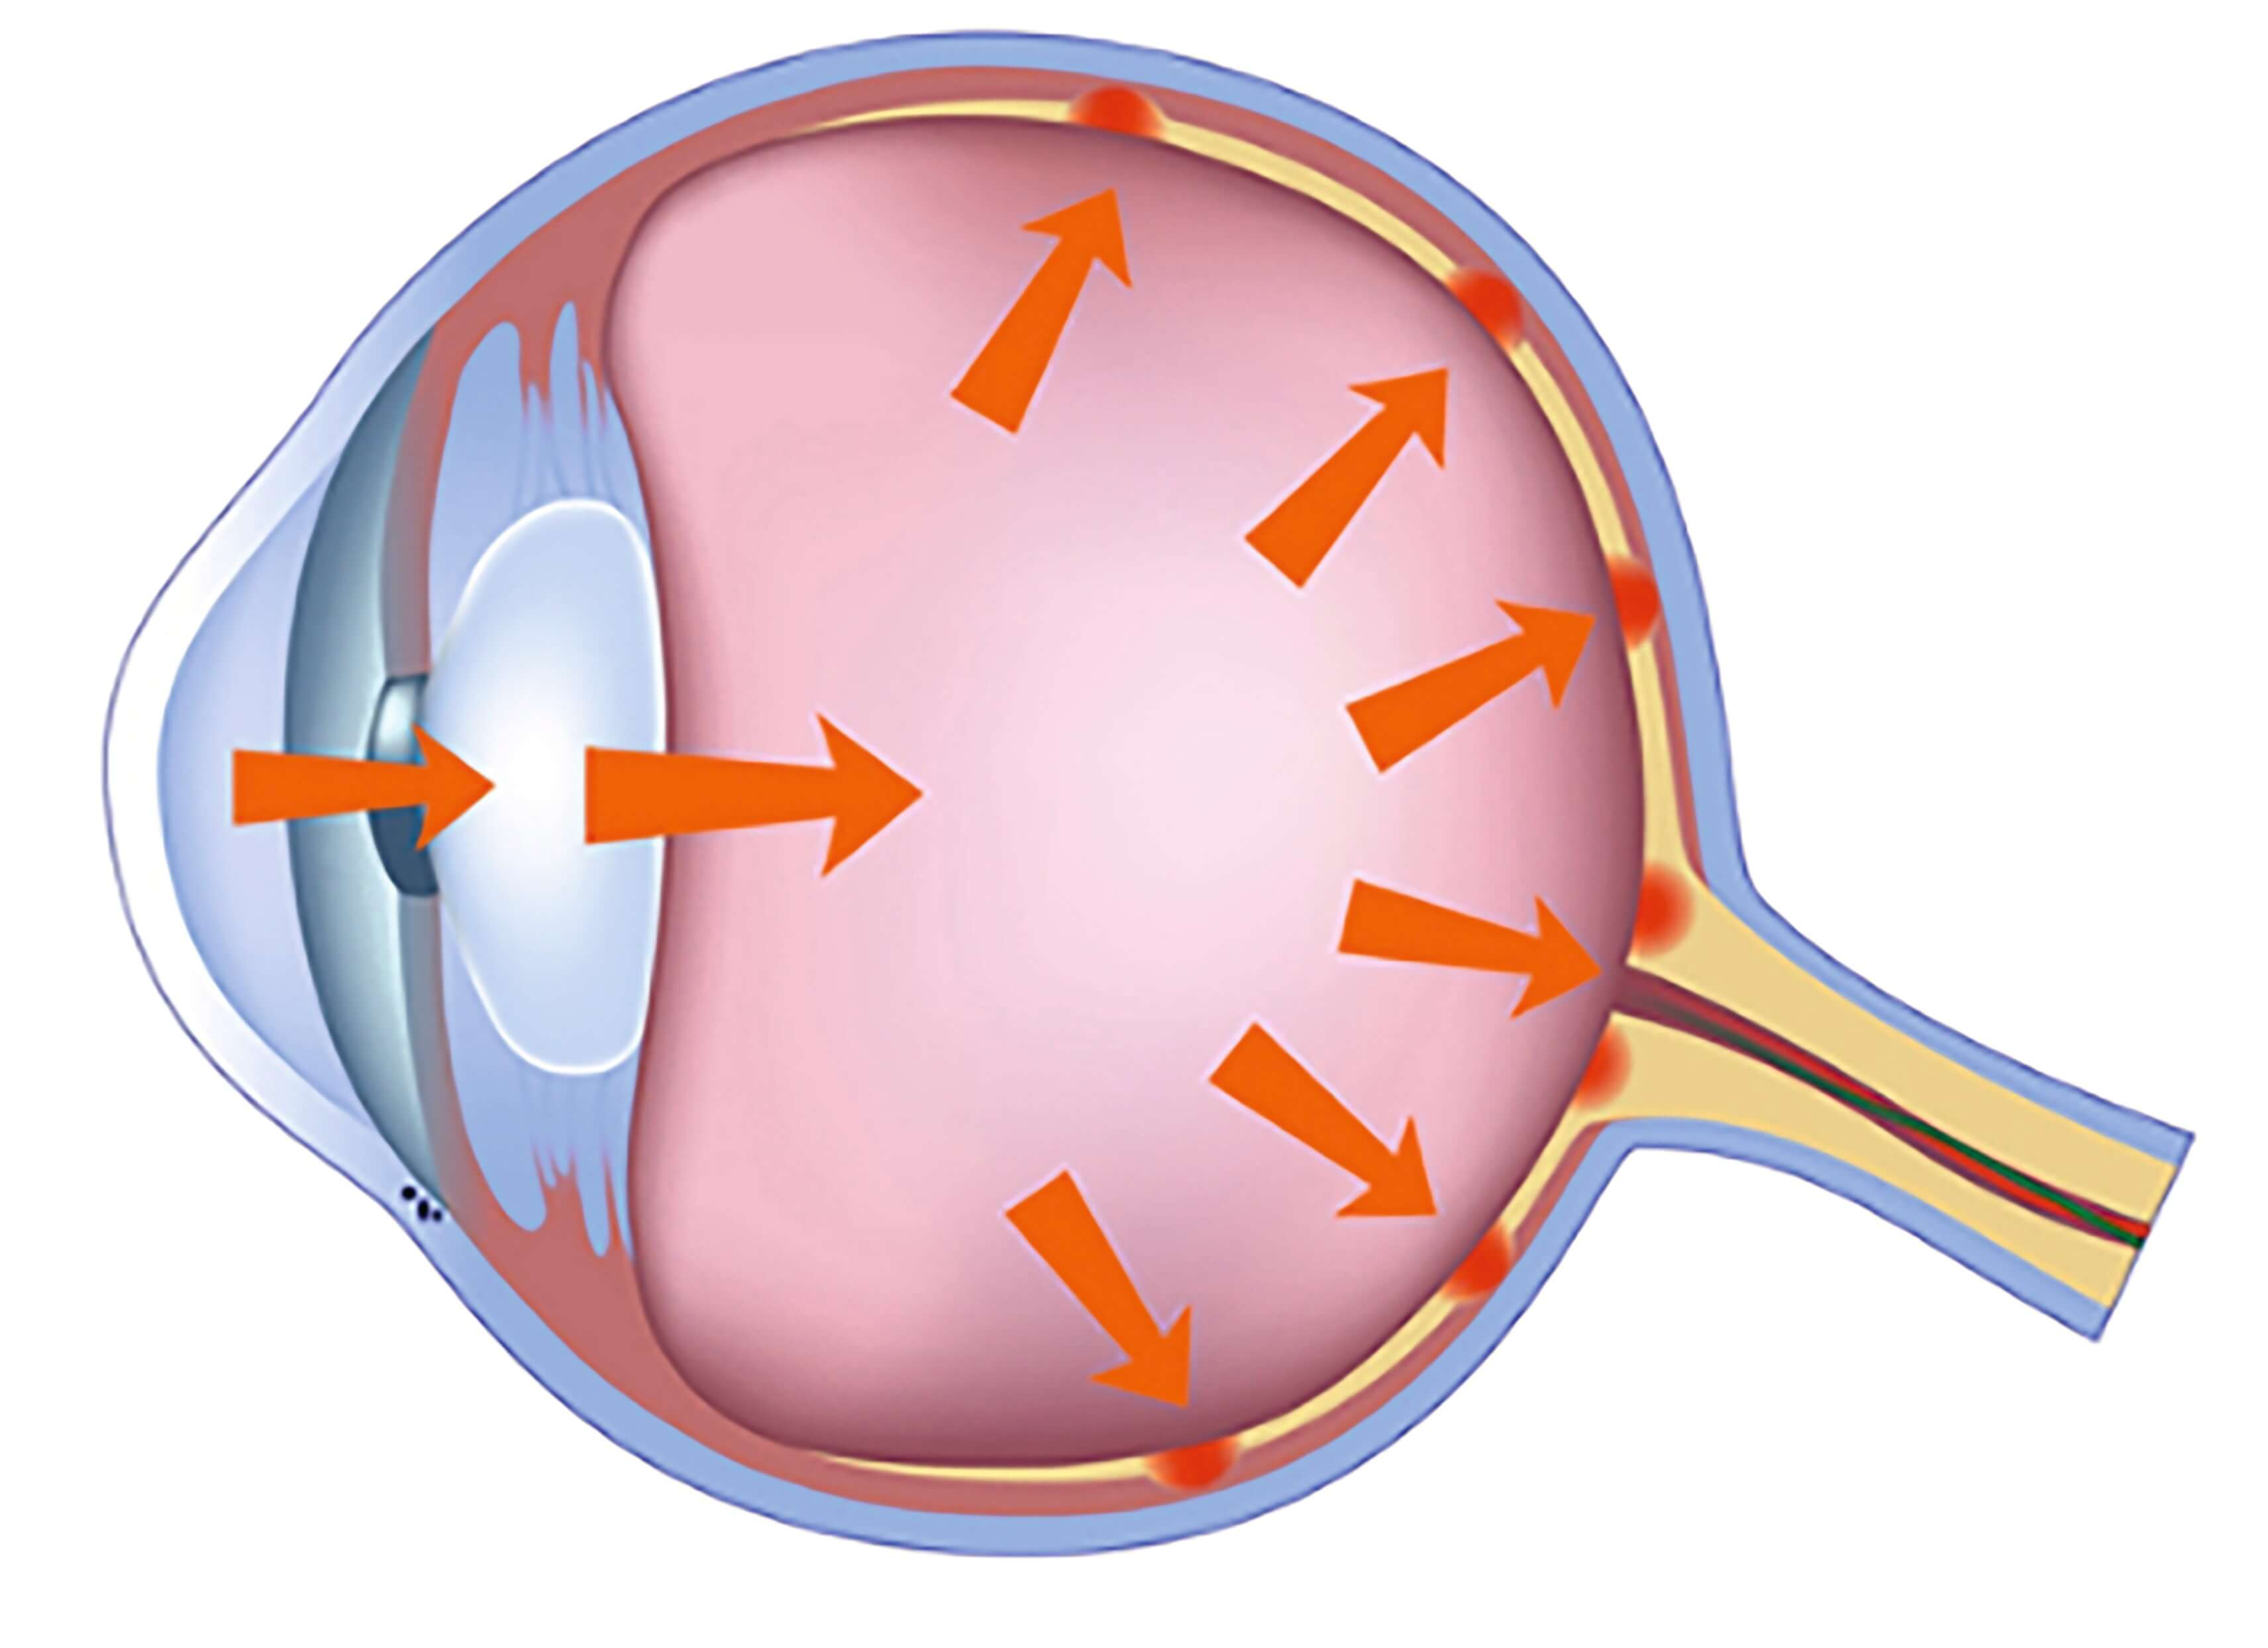 EYETECHCARE pressure inside the eye rises, compressing the optic nerve and tissue of the retina